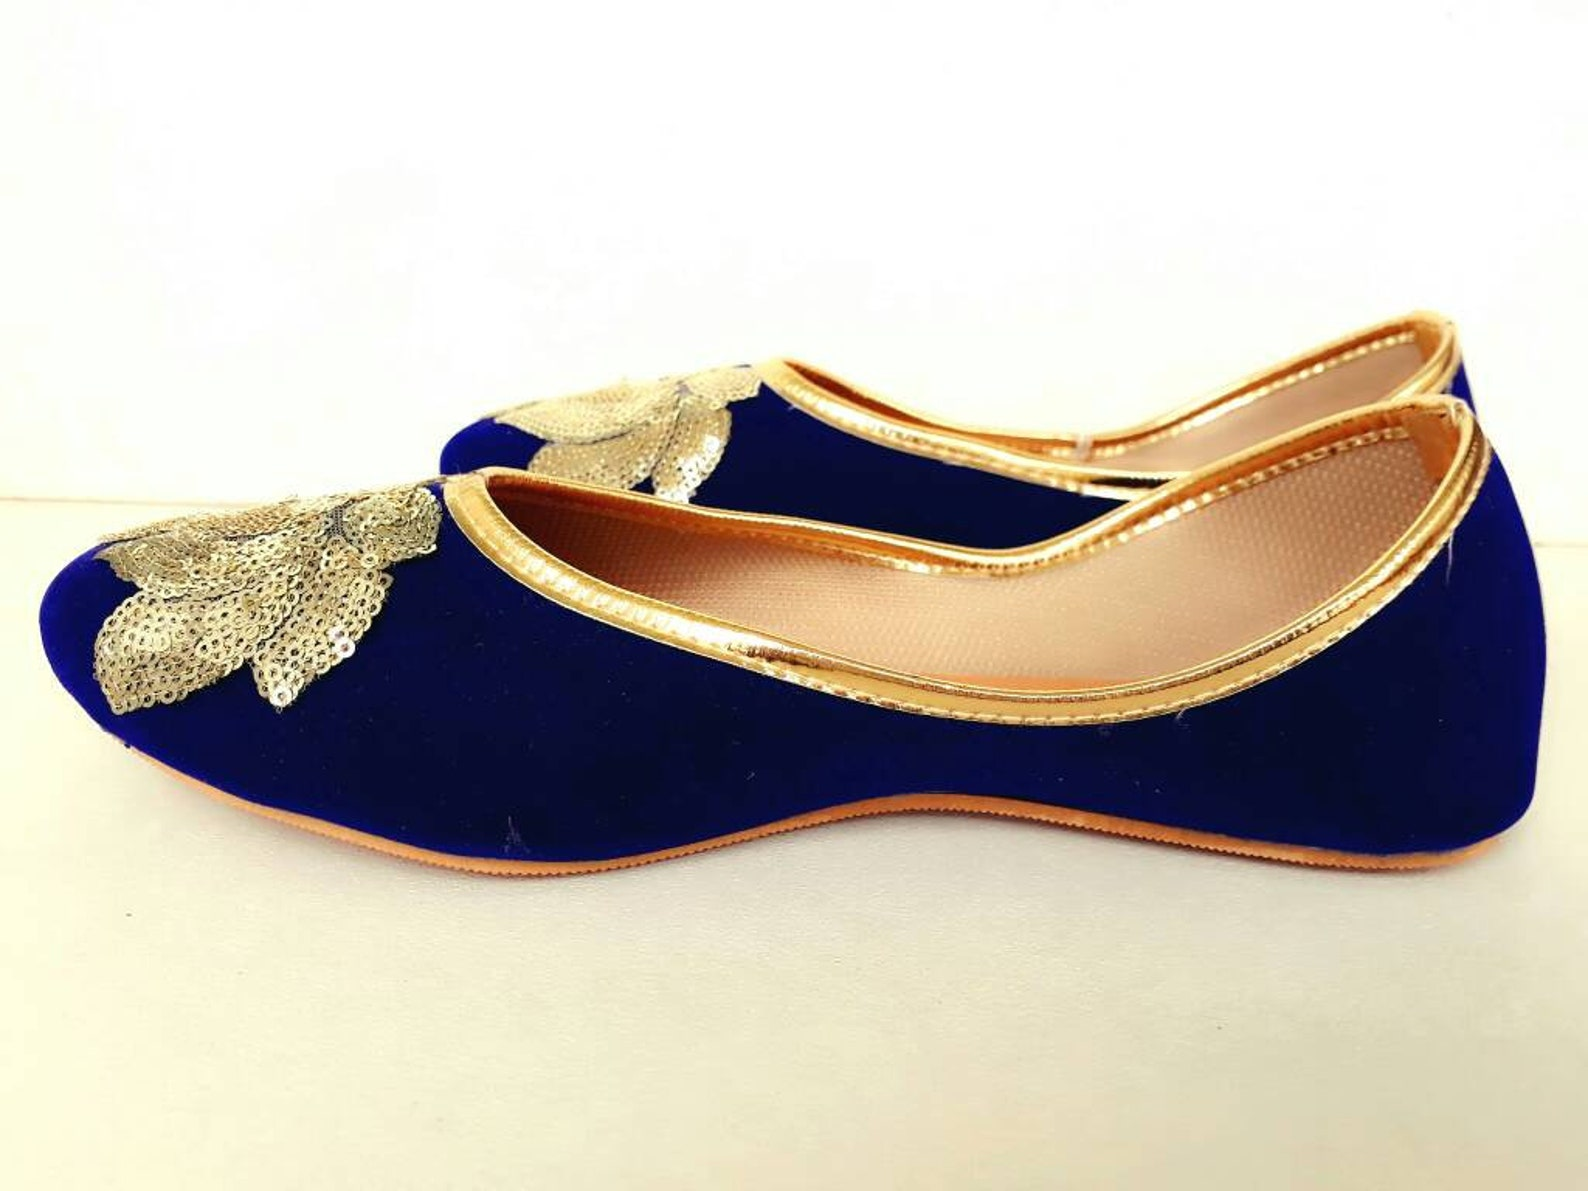 royal blue shoes/velvet shoes/gold embroidered shoes/navy blue women shoes/wedding shoes/ballet flats/wedding flats